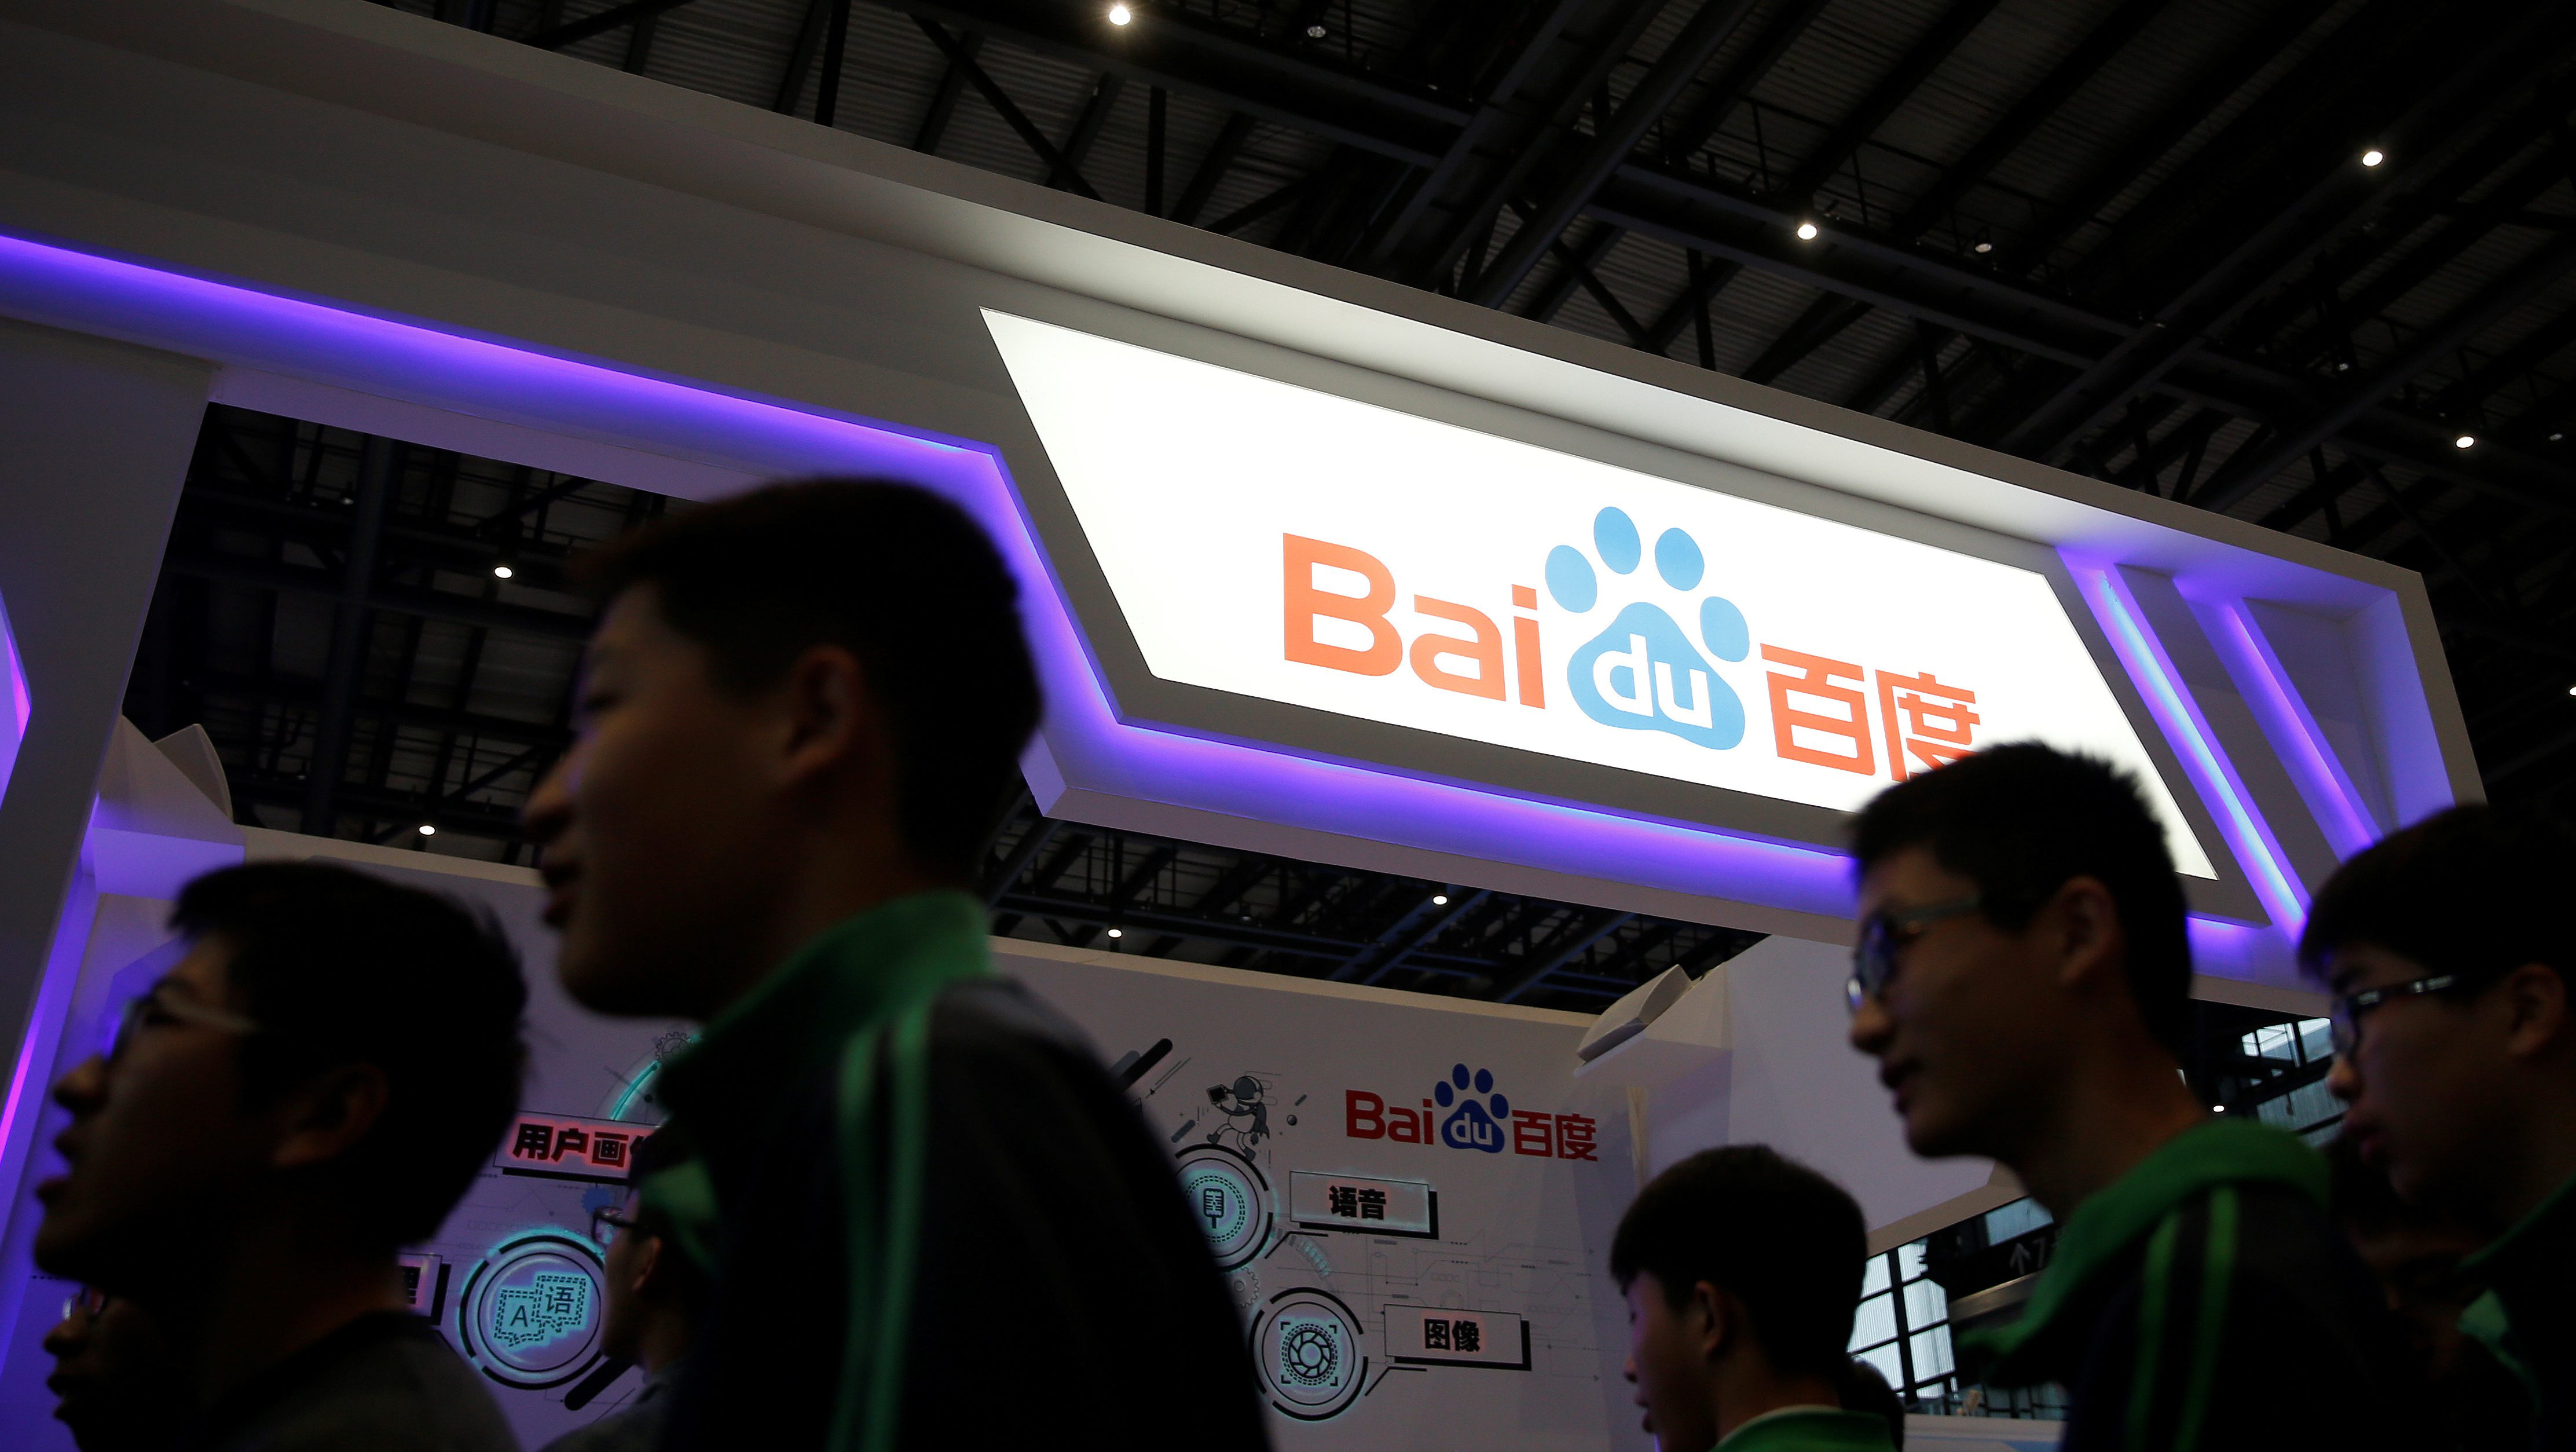 A sign of Baidu is seen during the third annual World Internet Conference in Wuzhen town of Jiaxing, Zhejiang province, China November 17, 2016. REUTERS/Aly Song - RTX2U1M3